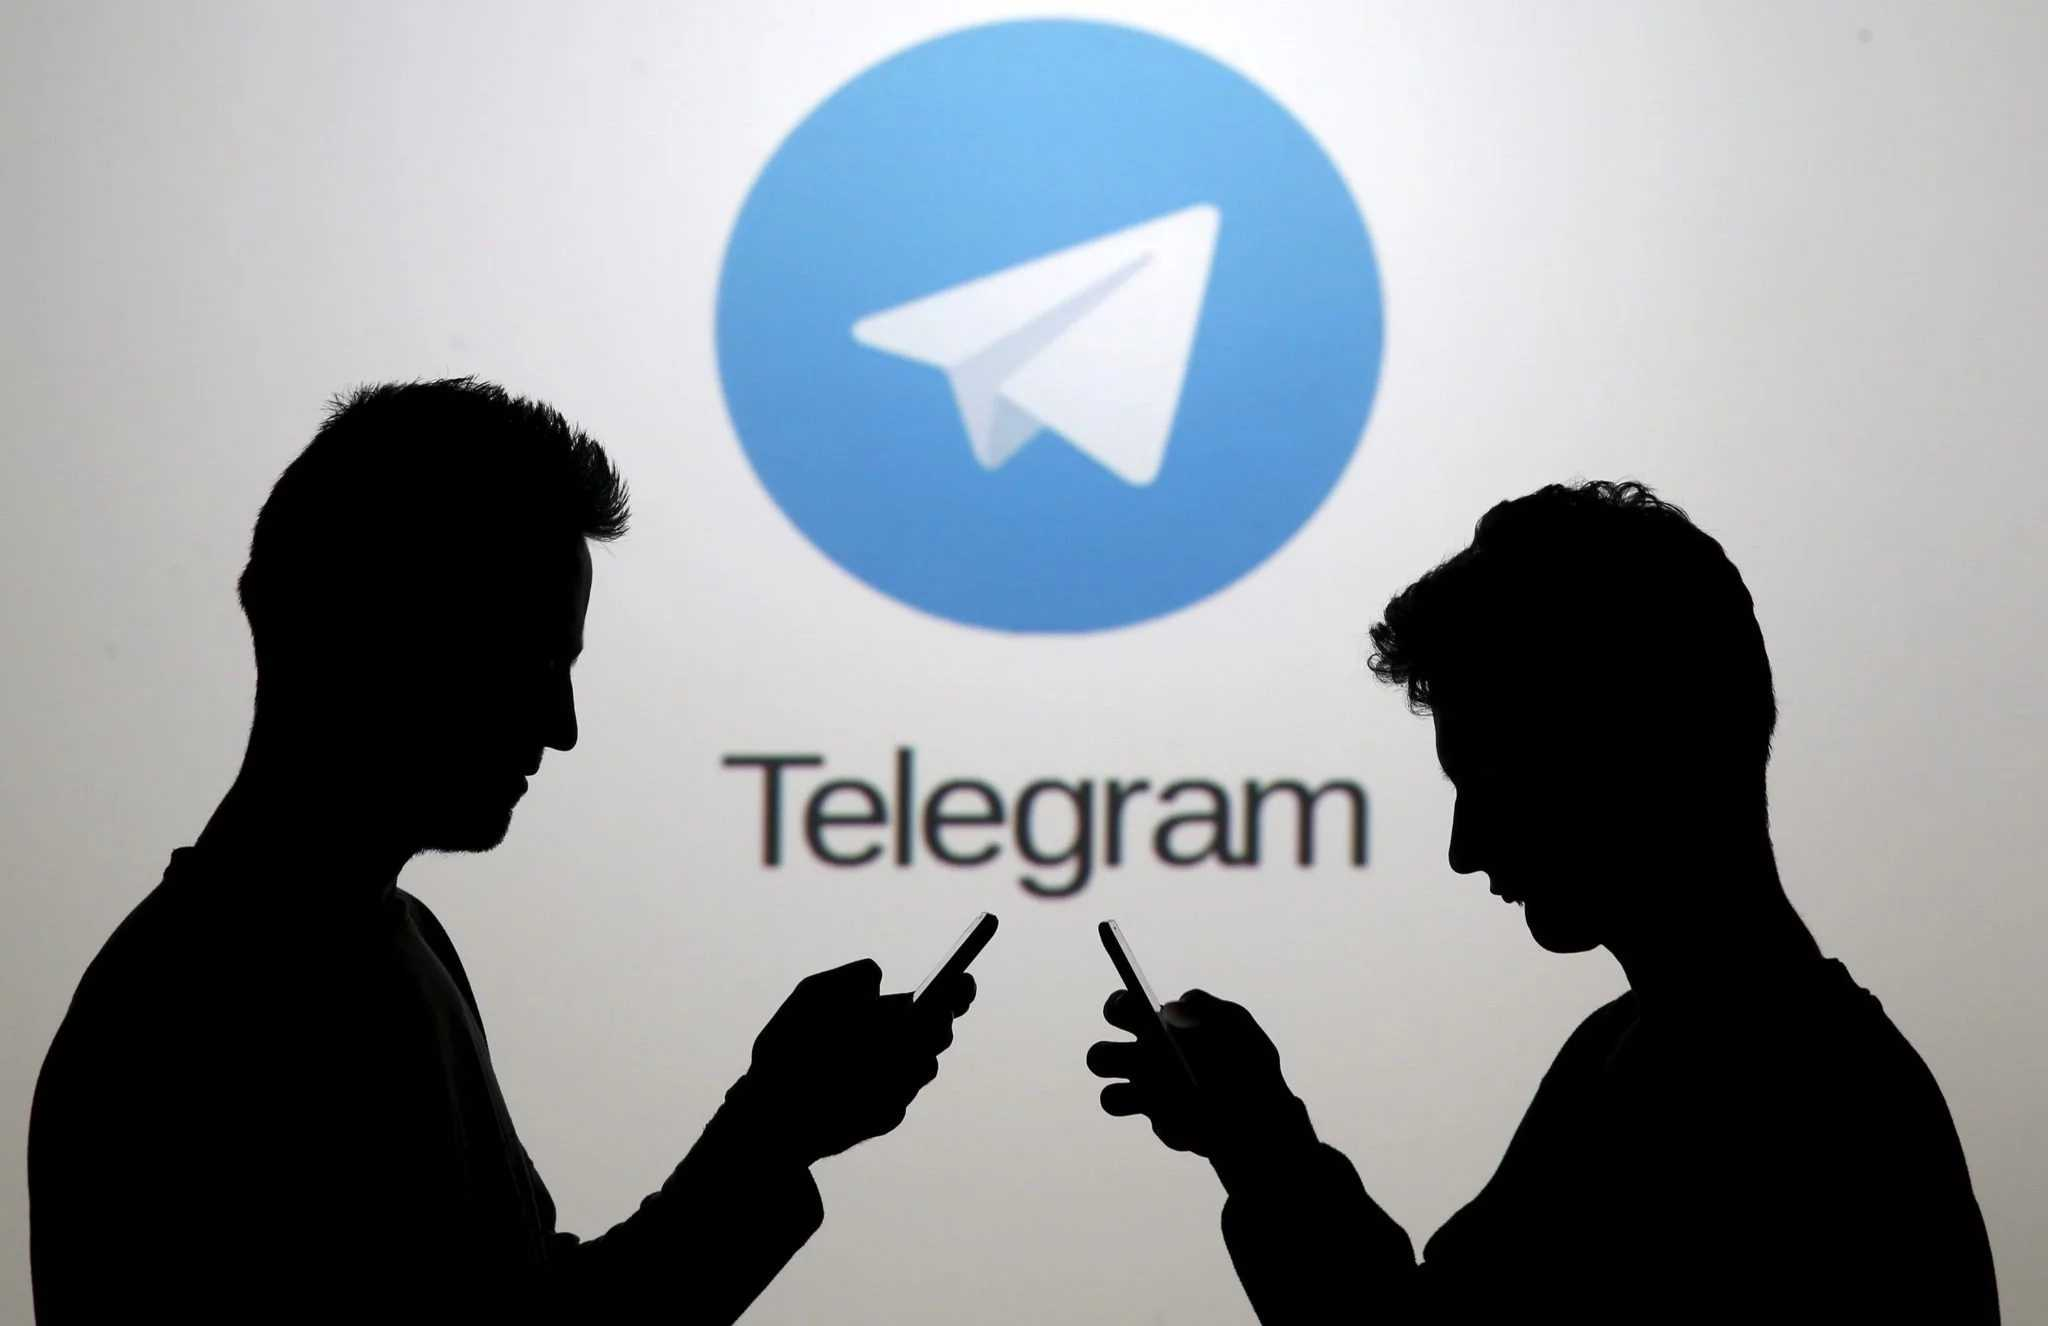 Scooper - Femininity News: Top 7 telegram groups Kenya you must join